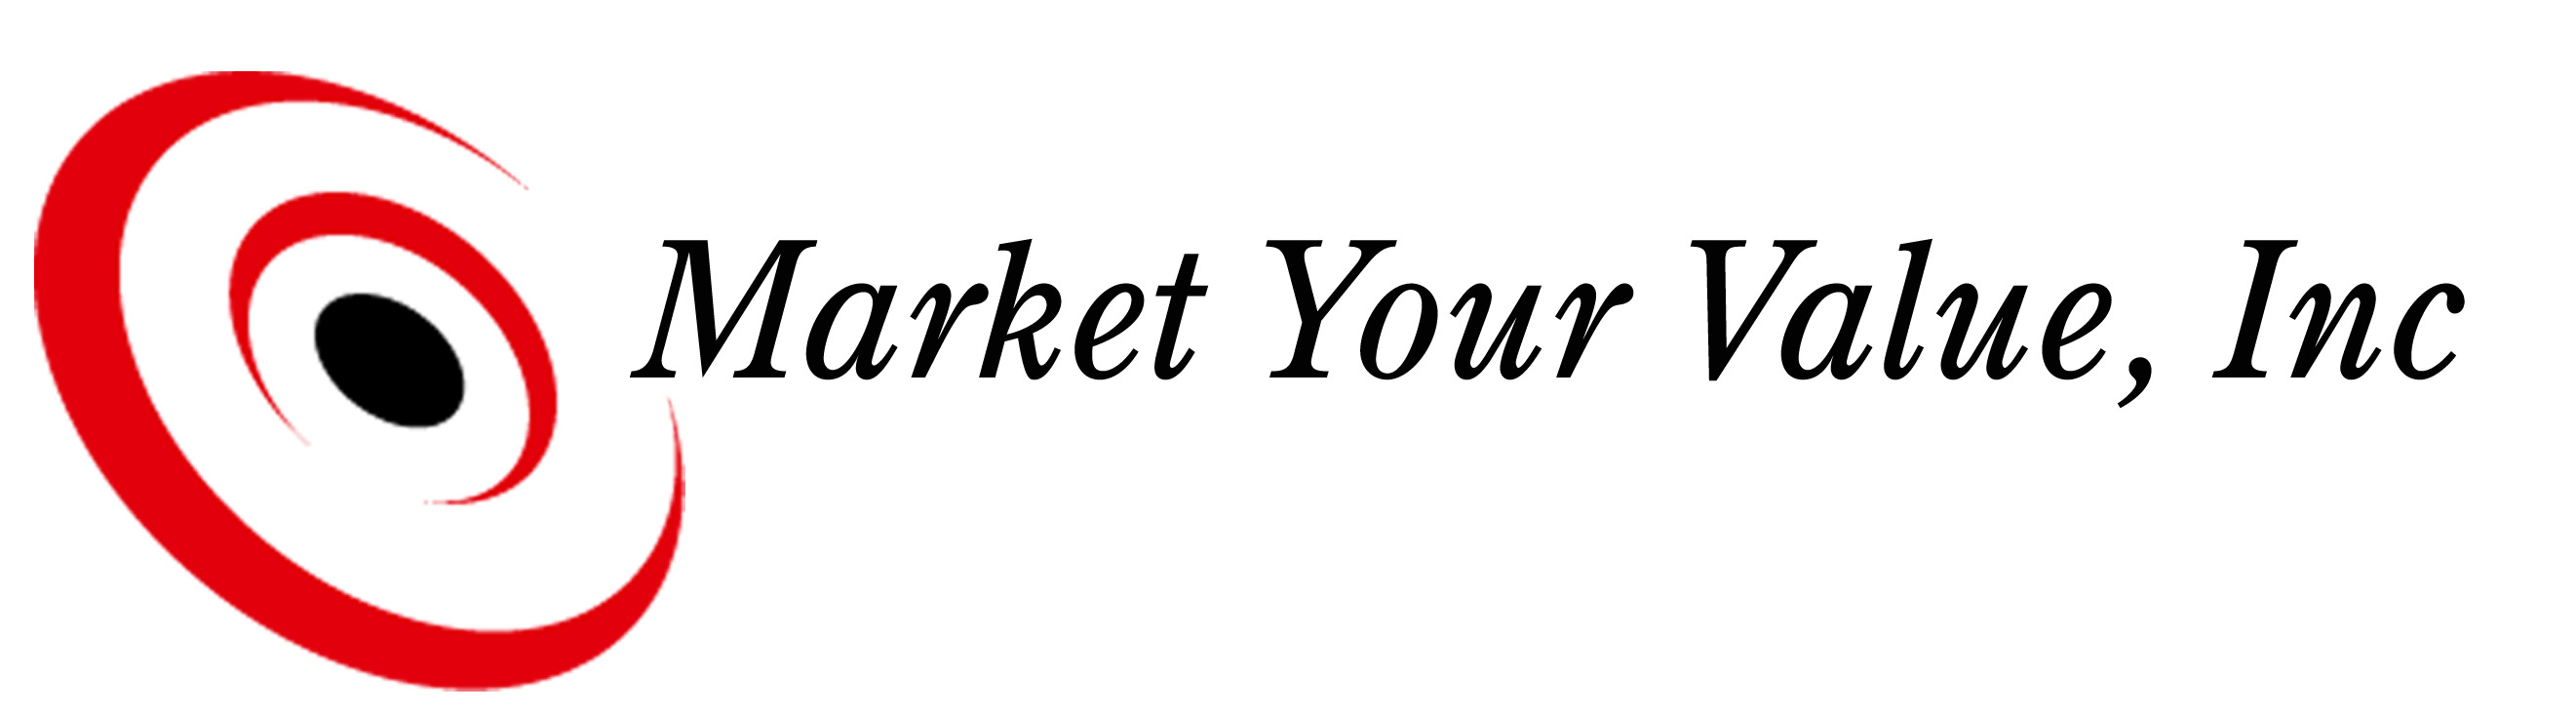 Market Your Value